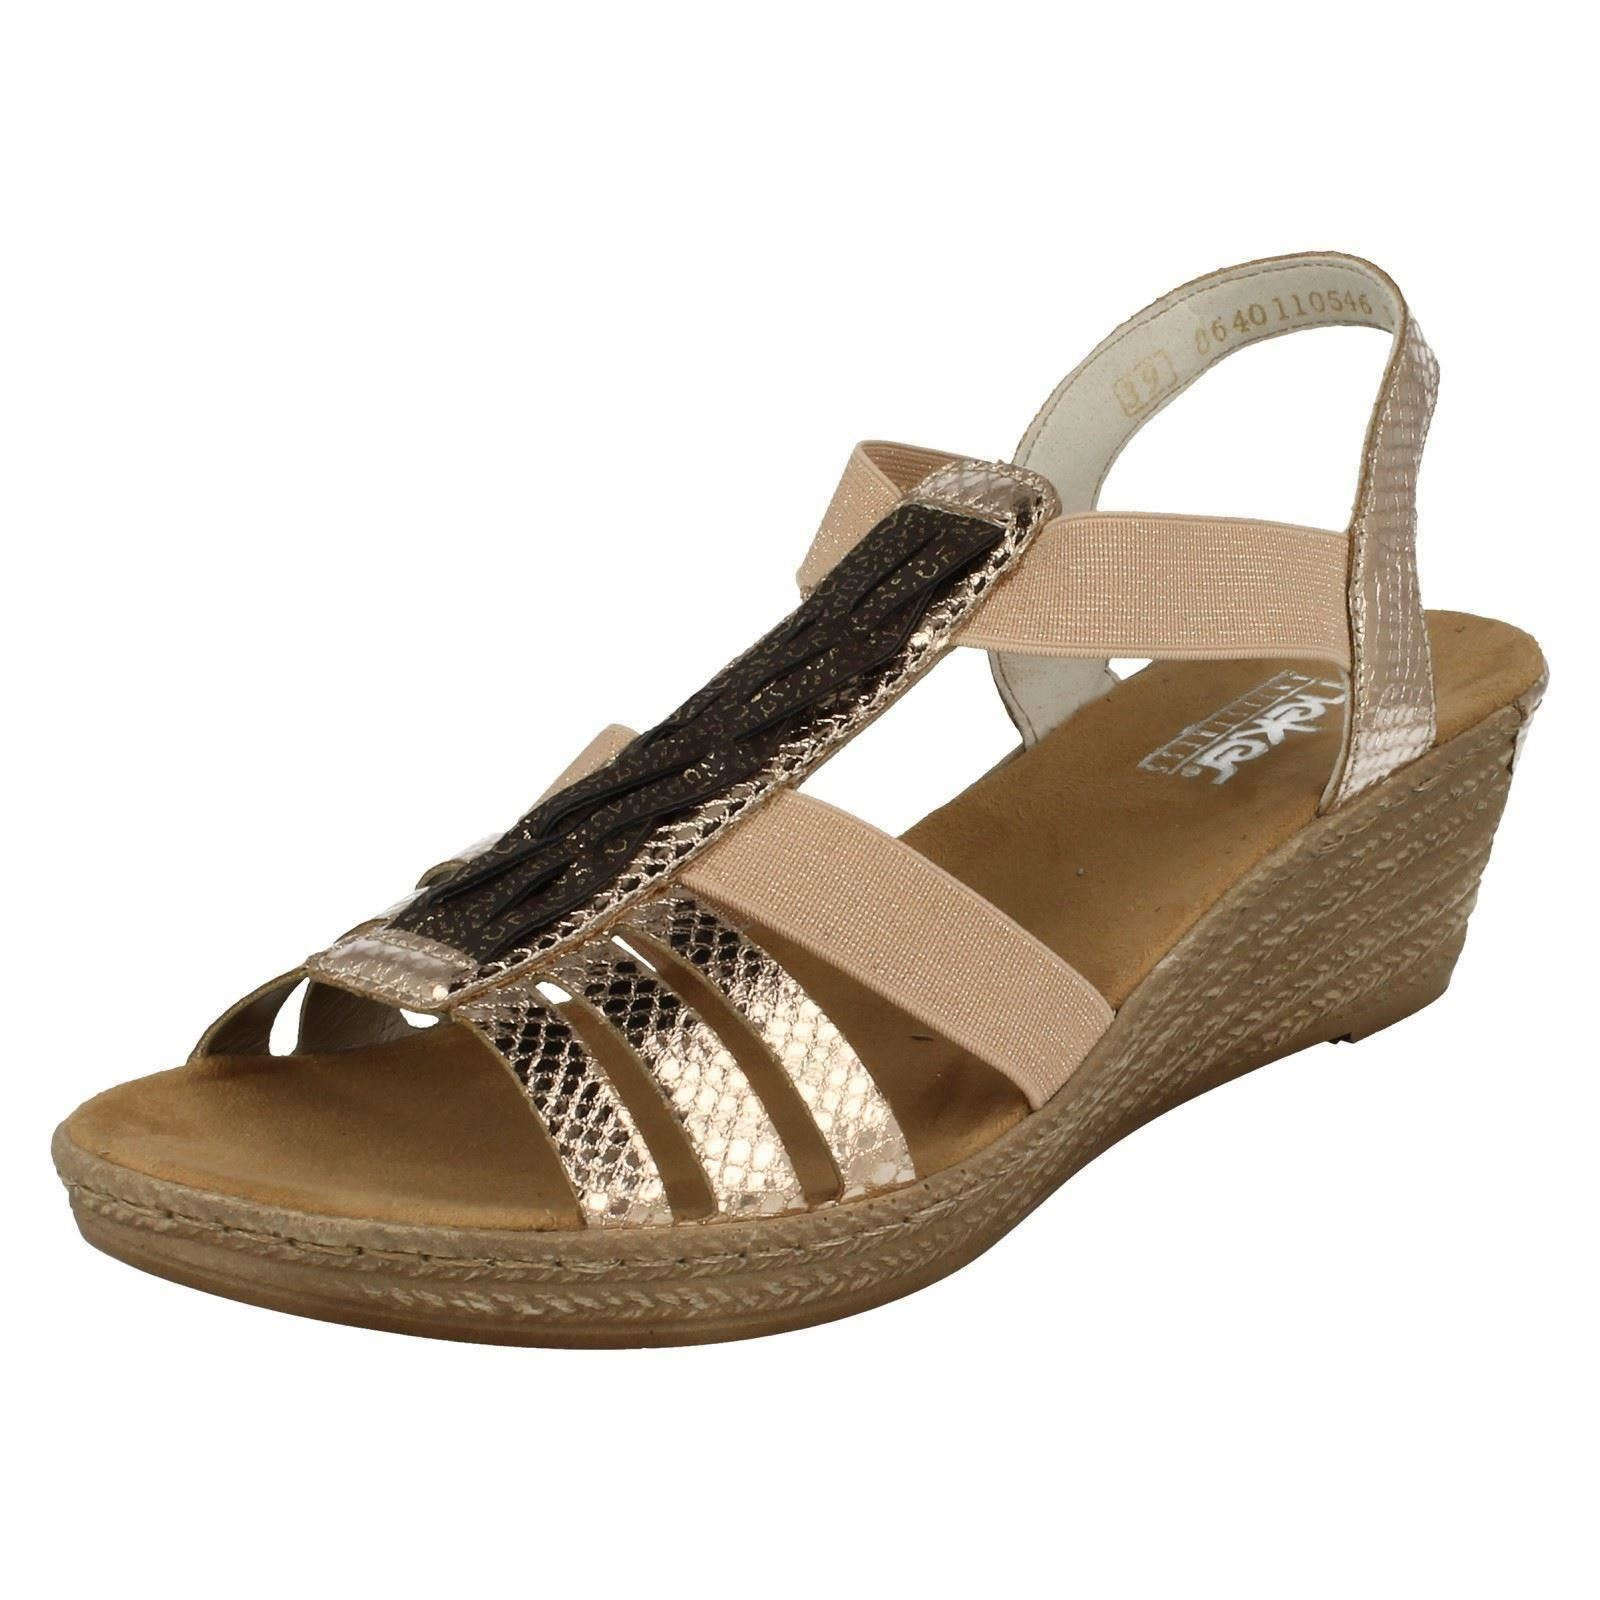 07d0105fa572 Details about Ladies Rieker Casual Wedge Summer Sandals 62479